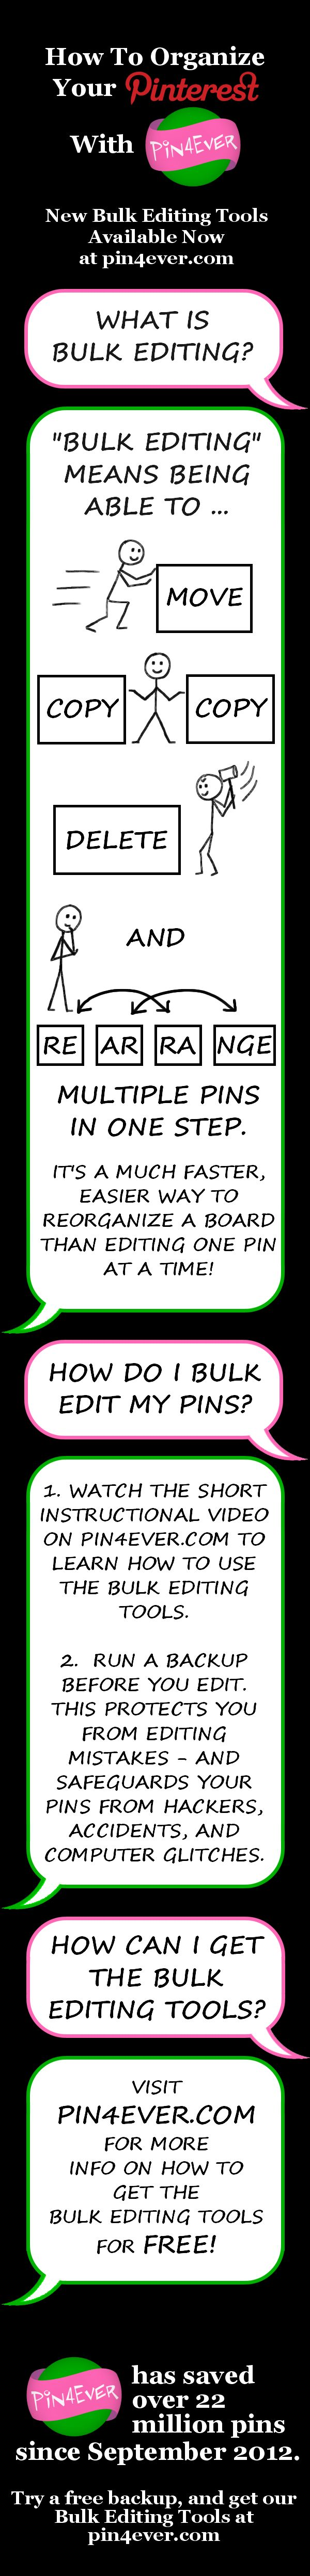 Organize your Pinterest boards the fast and easy way. Pin4Ever has saved, edited and uploaded more than 170 million pins since September 2012. Visit pin4ever.com to try it free for a week!